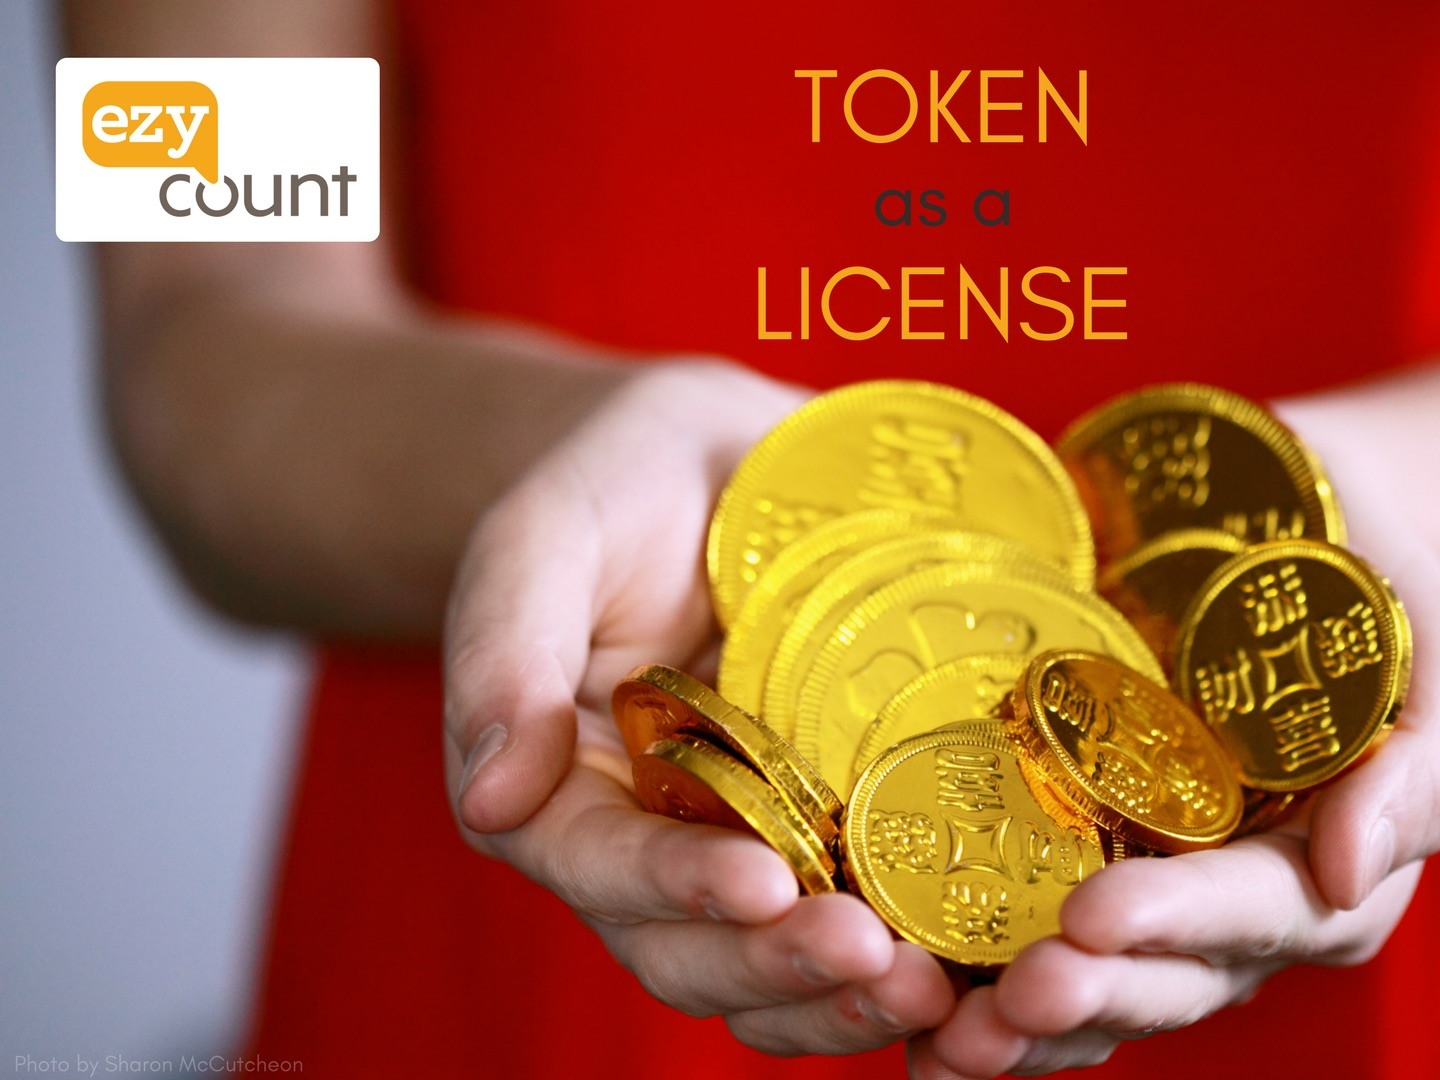 Token as a license